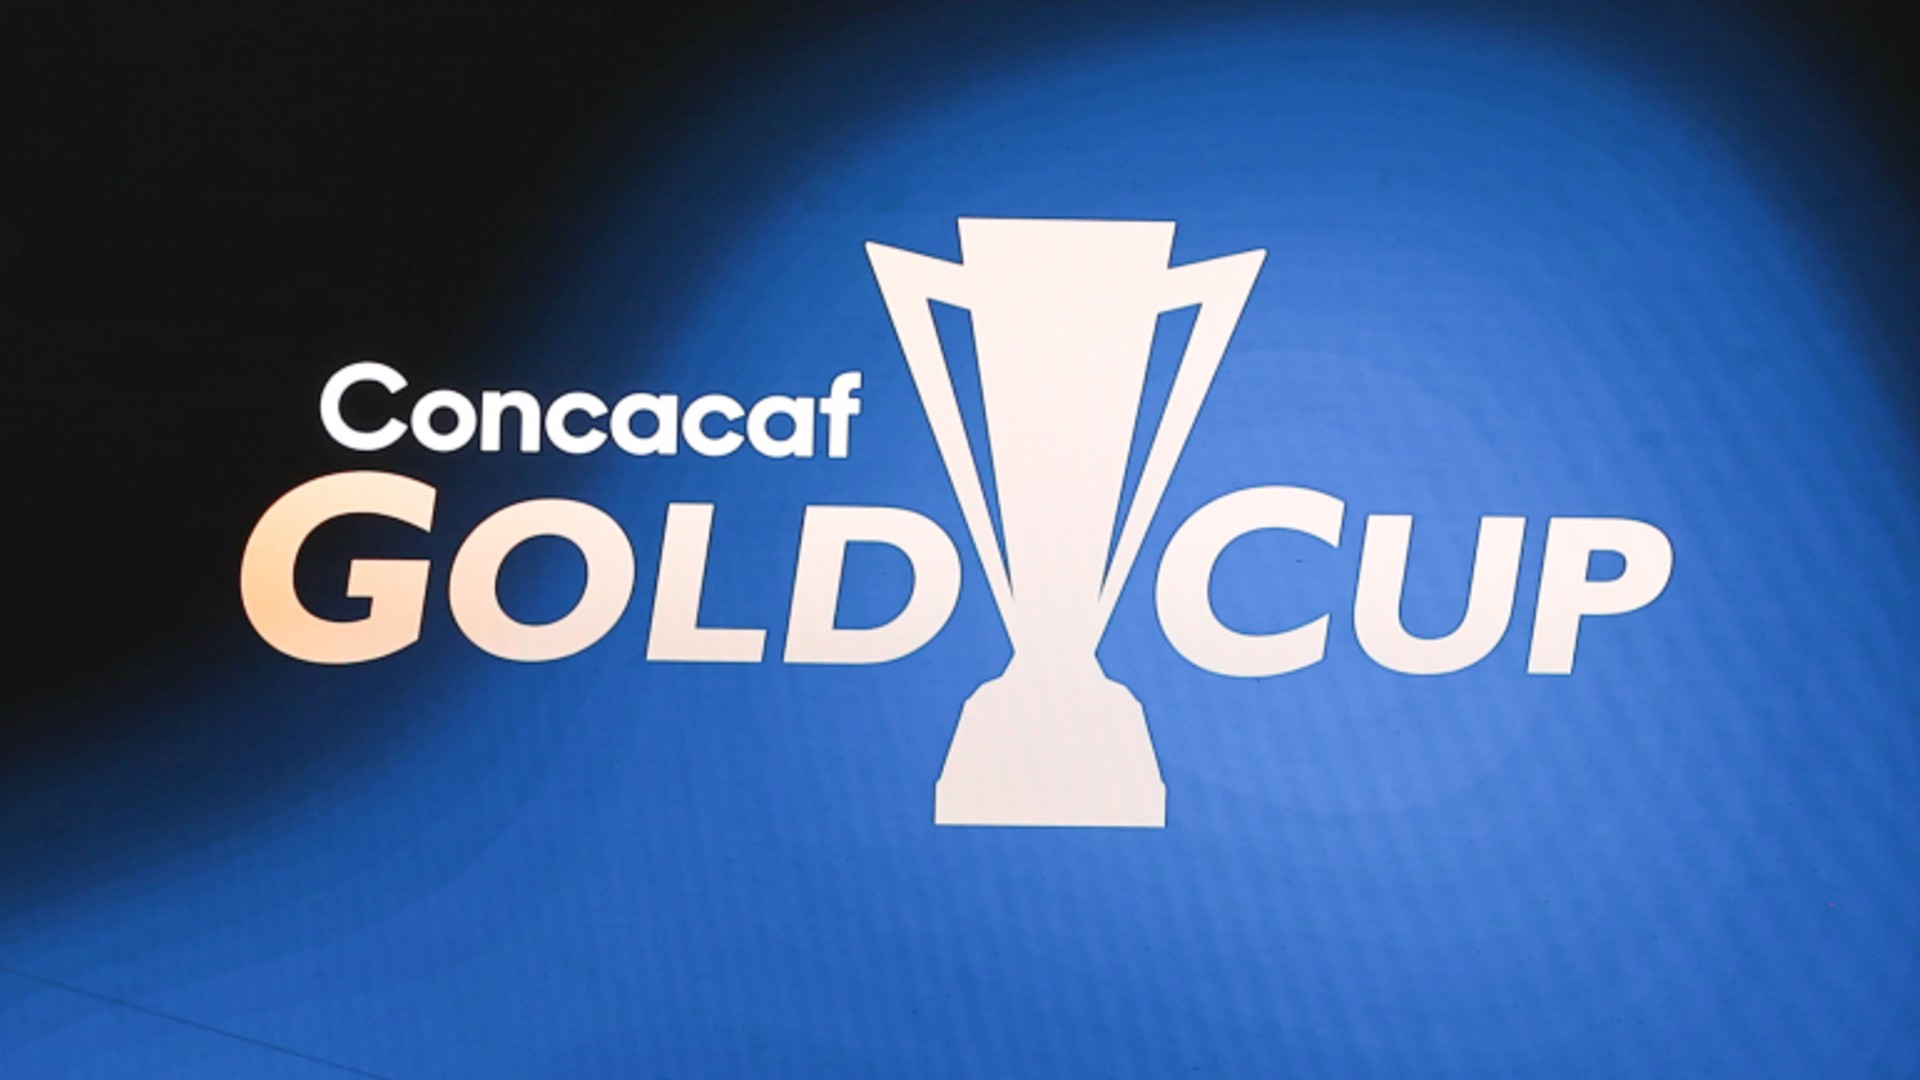 CONCACAF Gold Cup schedule 2021: Complete dates, times, TV channels to watch every game in USA